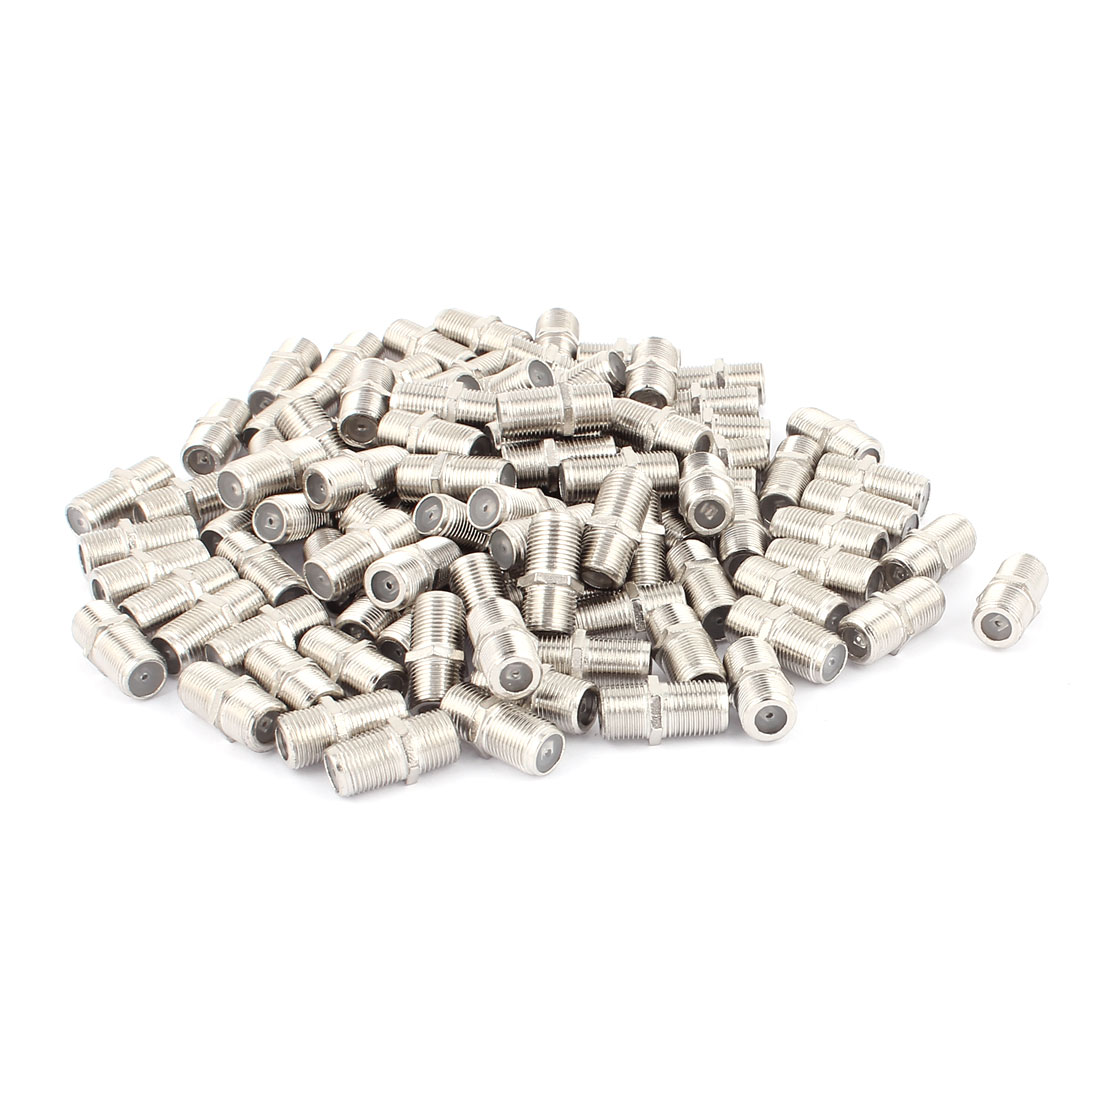 100 Pcs F Type Female to Female Straight RF Coax TV Adapter Connectors Silver Tone